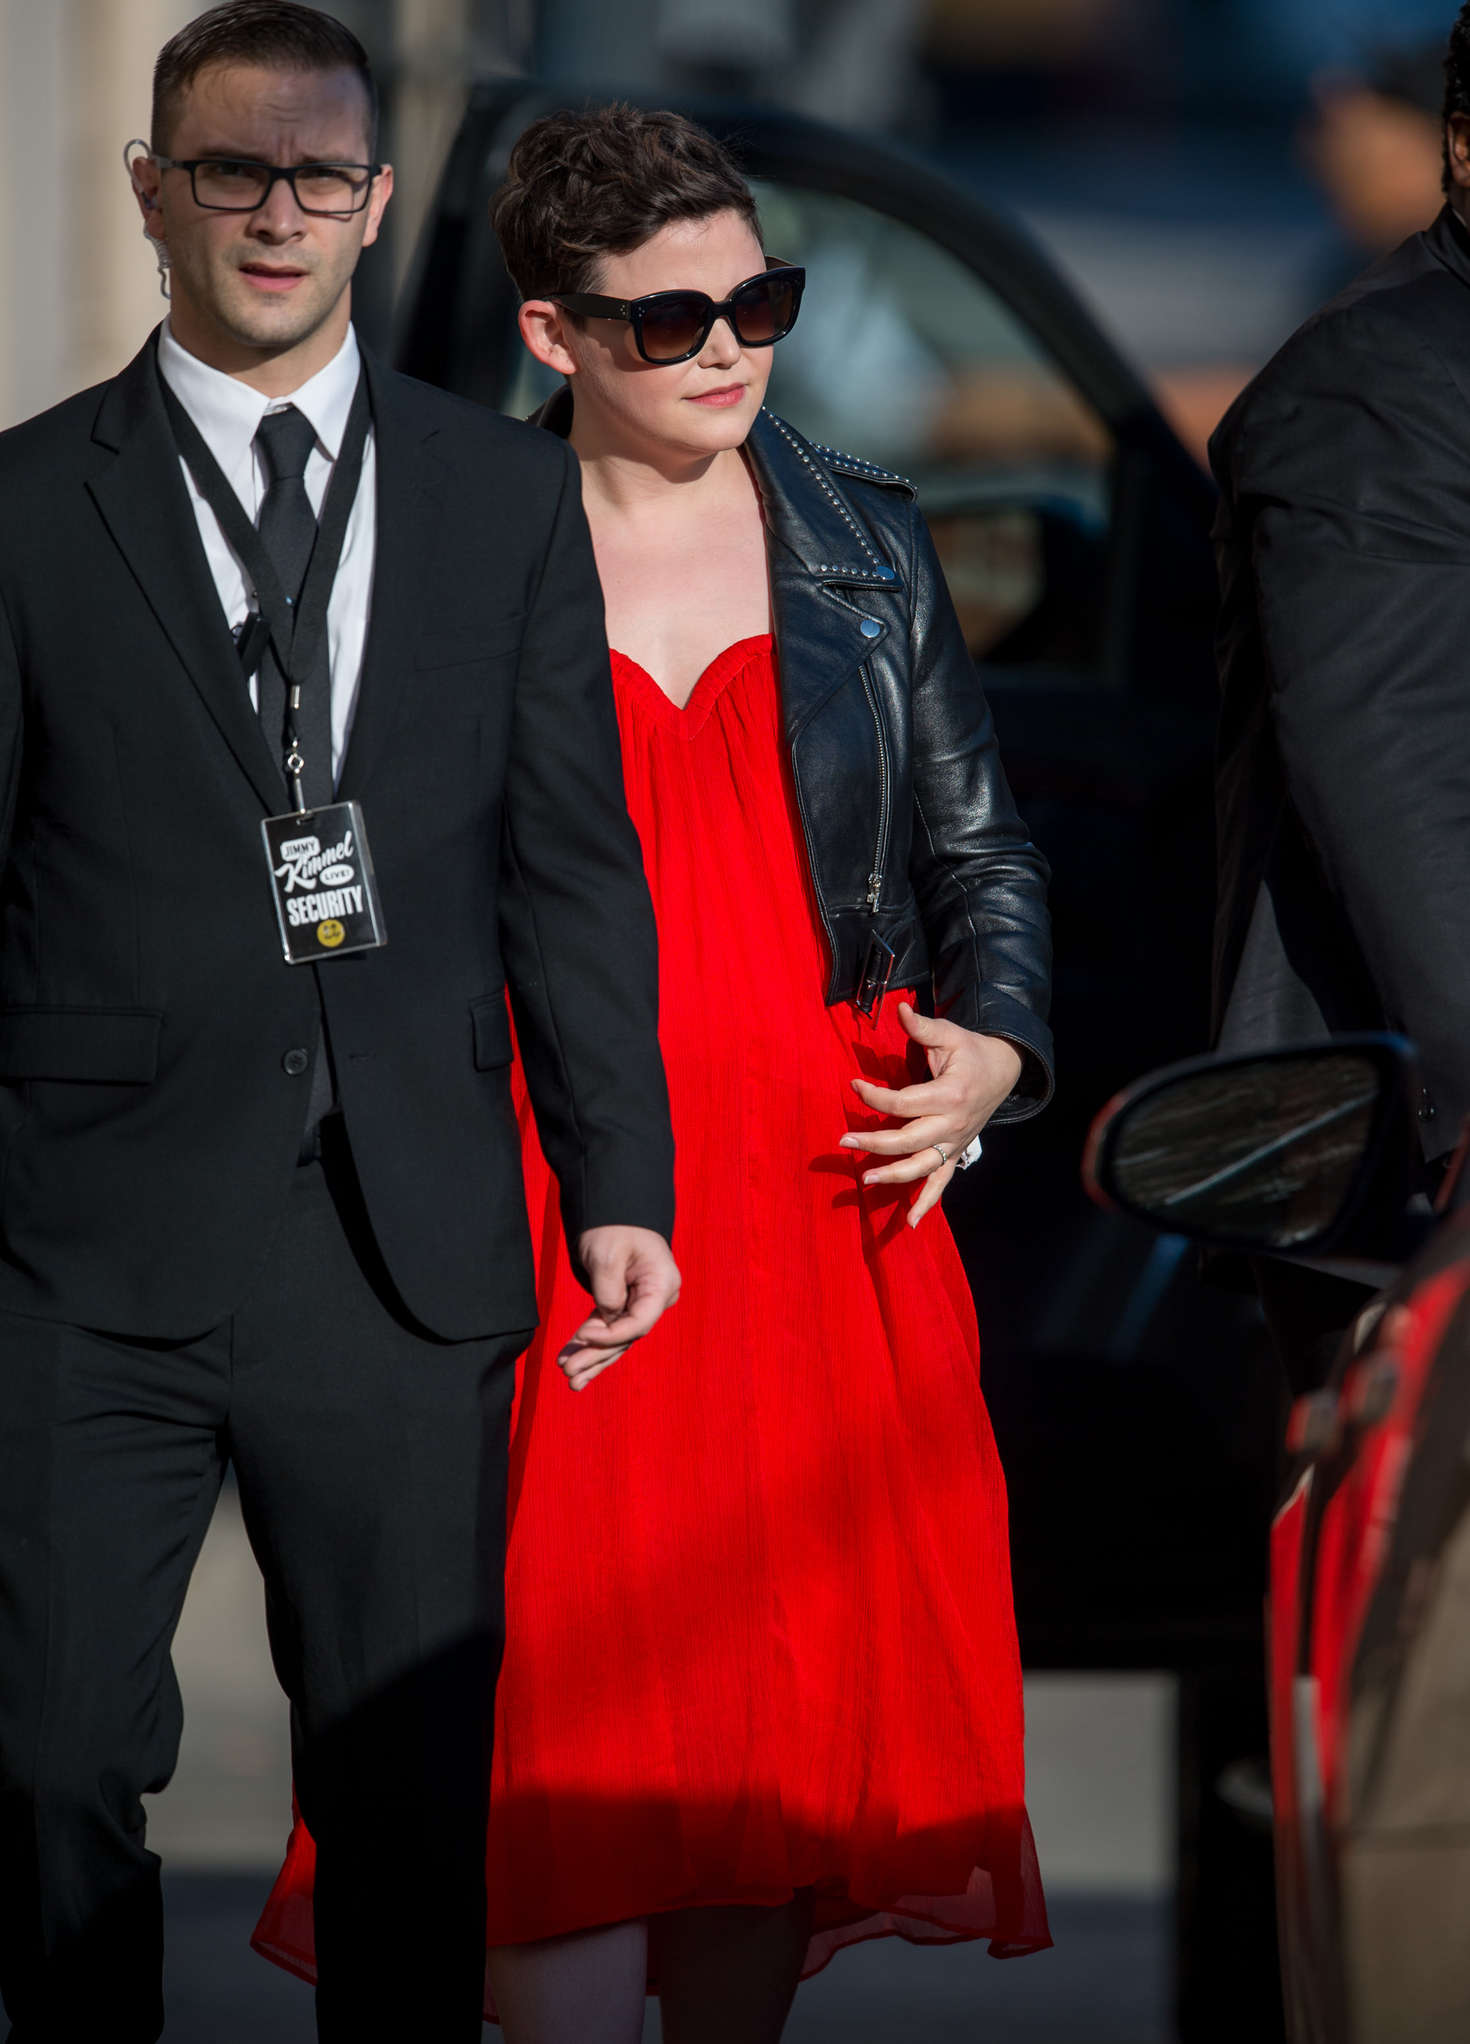 Ginnifer Goodwin Arriving at Jimmy Kimmel Live in Los Angeles